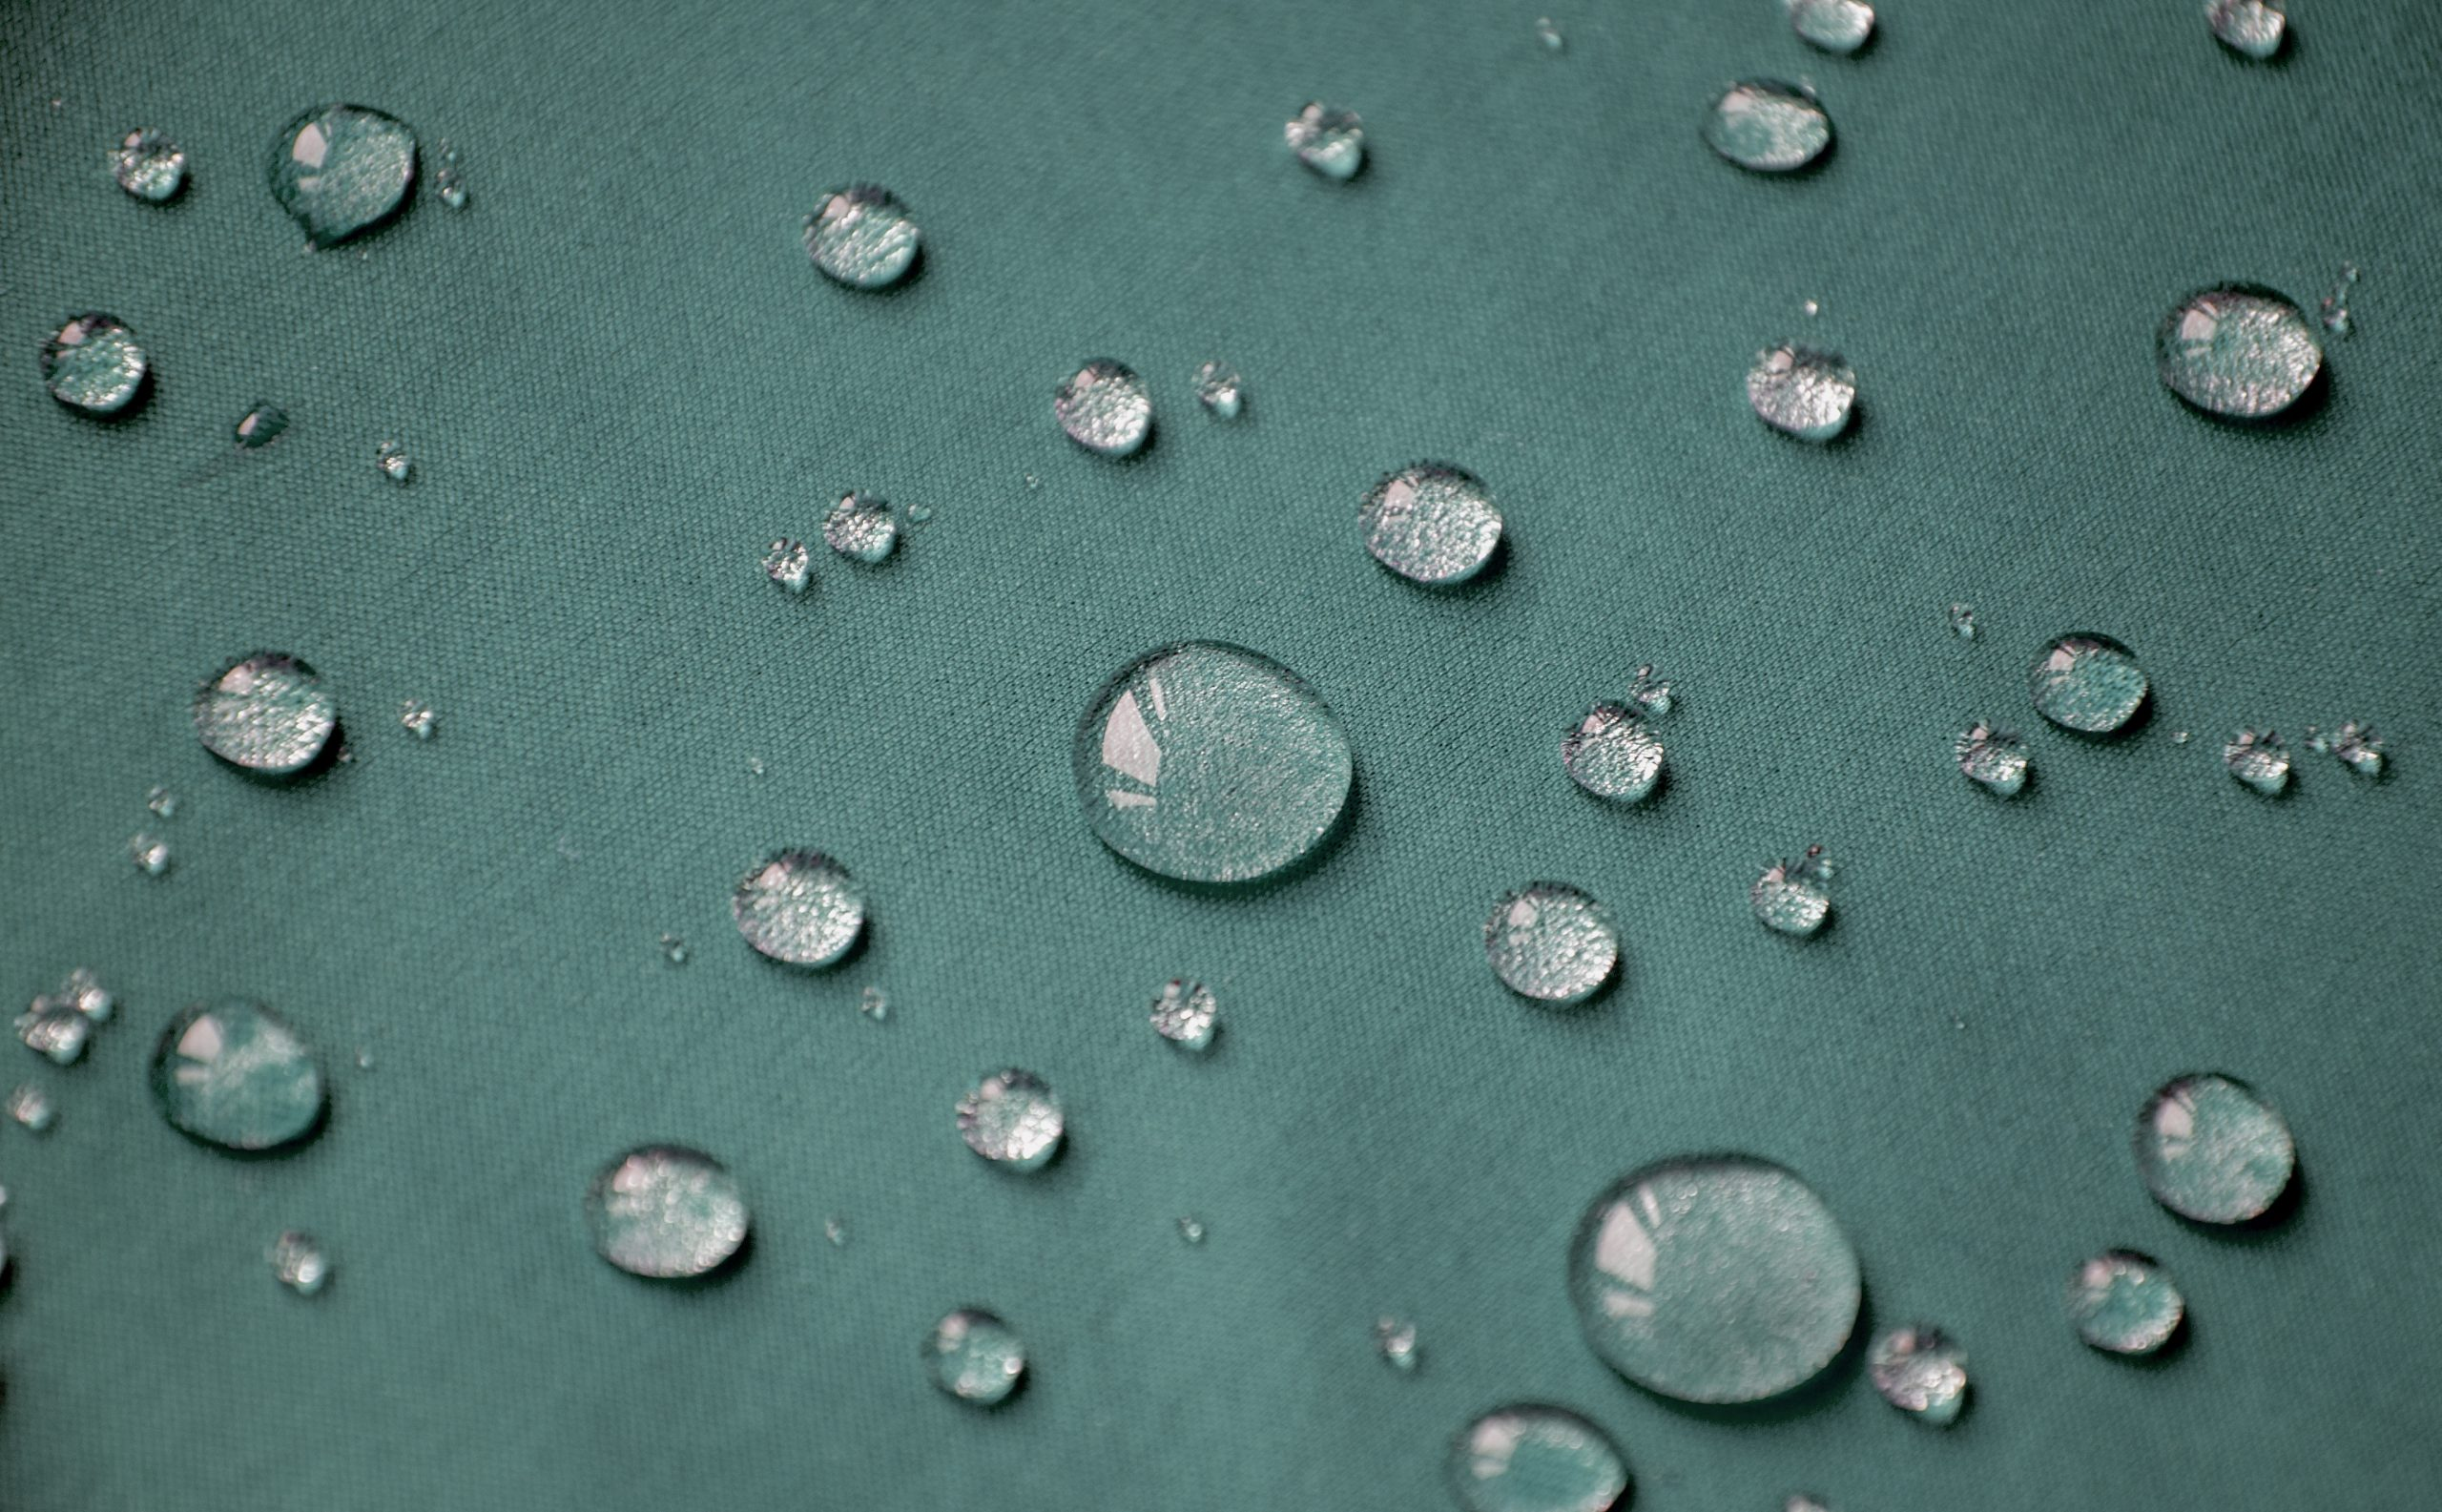 Water beading and repelled by hydrophobic surface treatment